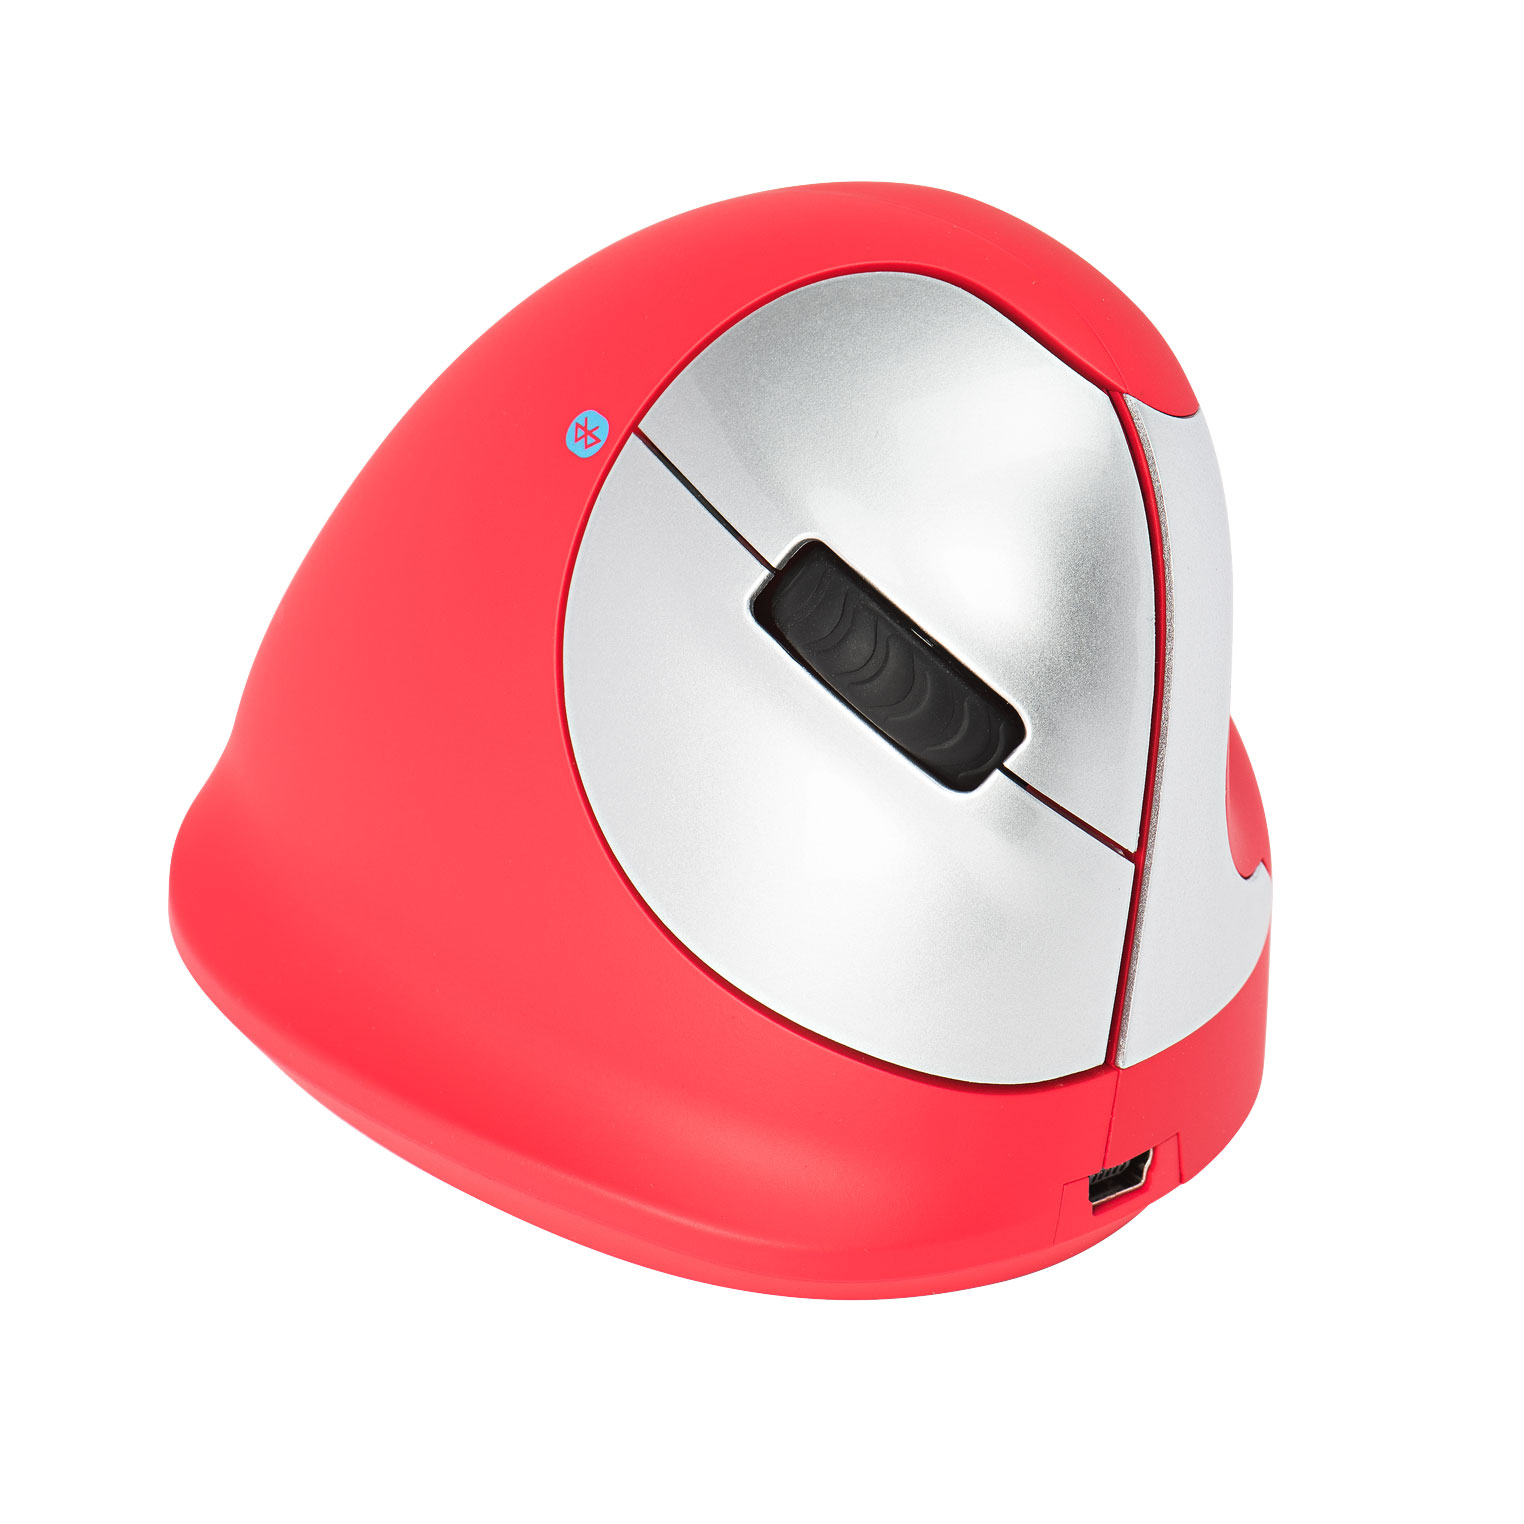 R-Go HE Sport Ergonomic Mouse, Medium (Hand Size 165-185mm), Right Handed, Bluetooth, Red